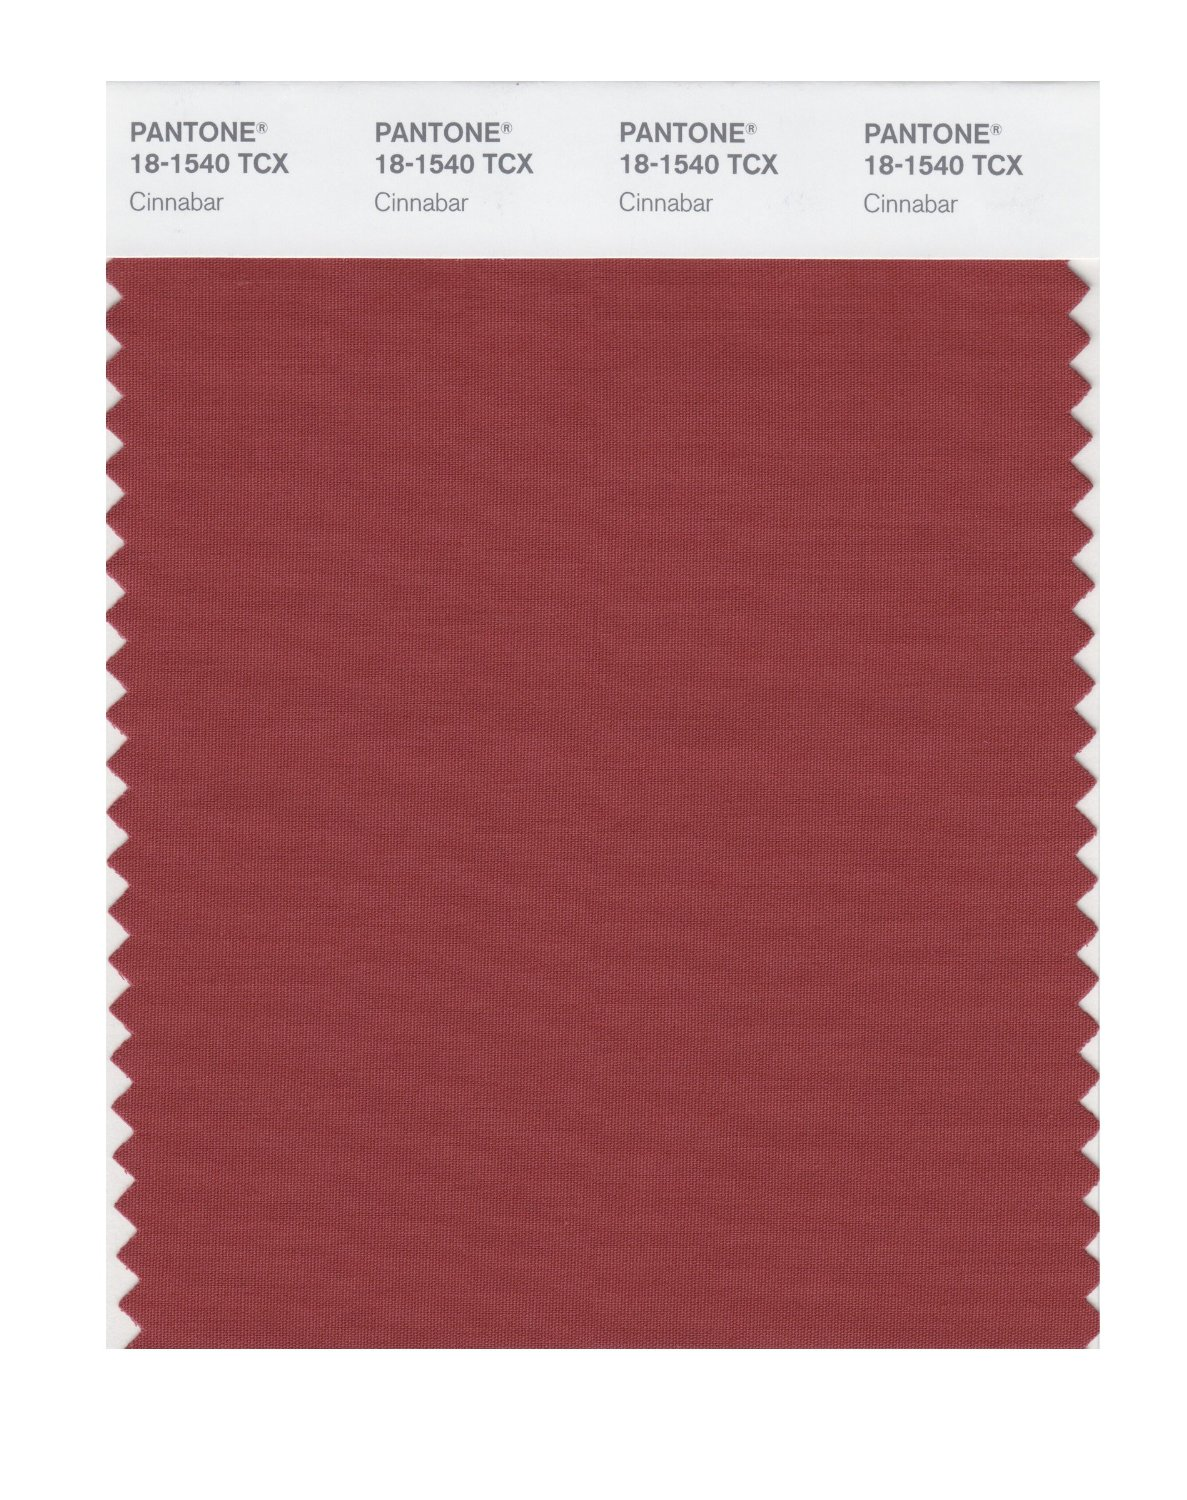 Pantone Smart Swatch 18-1540 Cinnabar